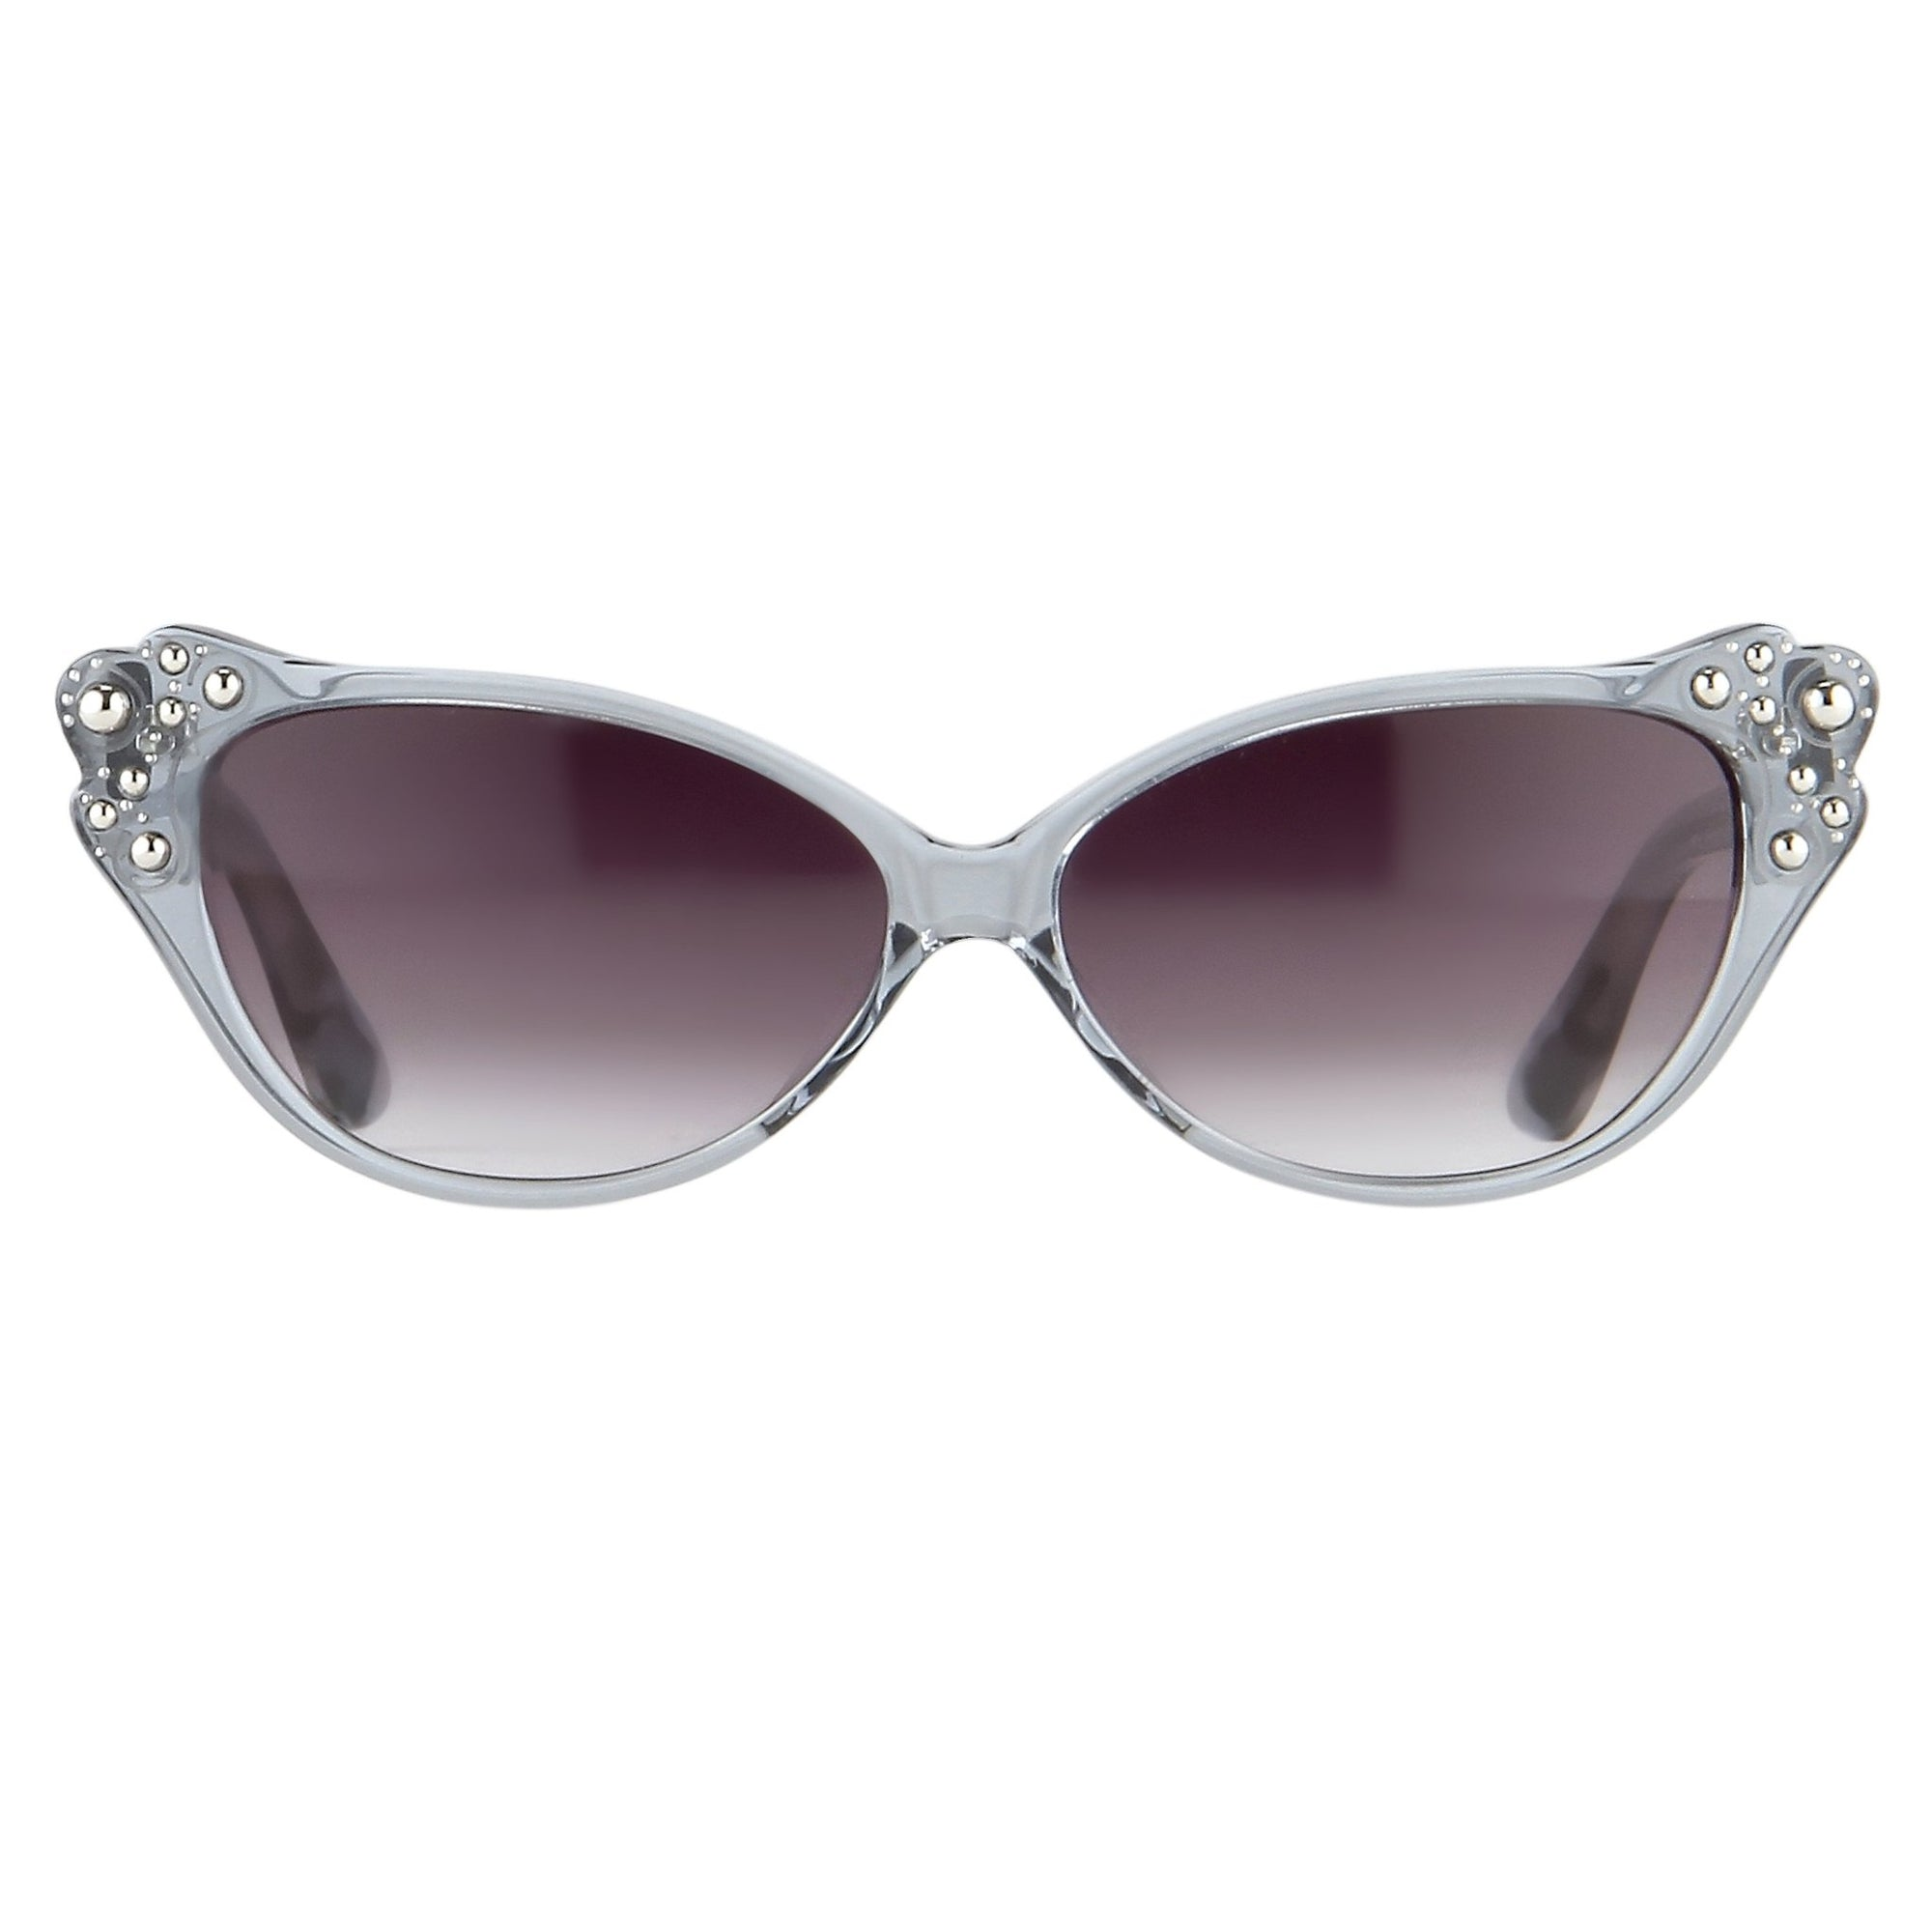 Agent Provocateur Sunglasses Cat Eye Blue Steel and Grey